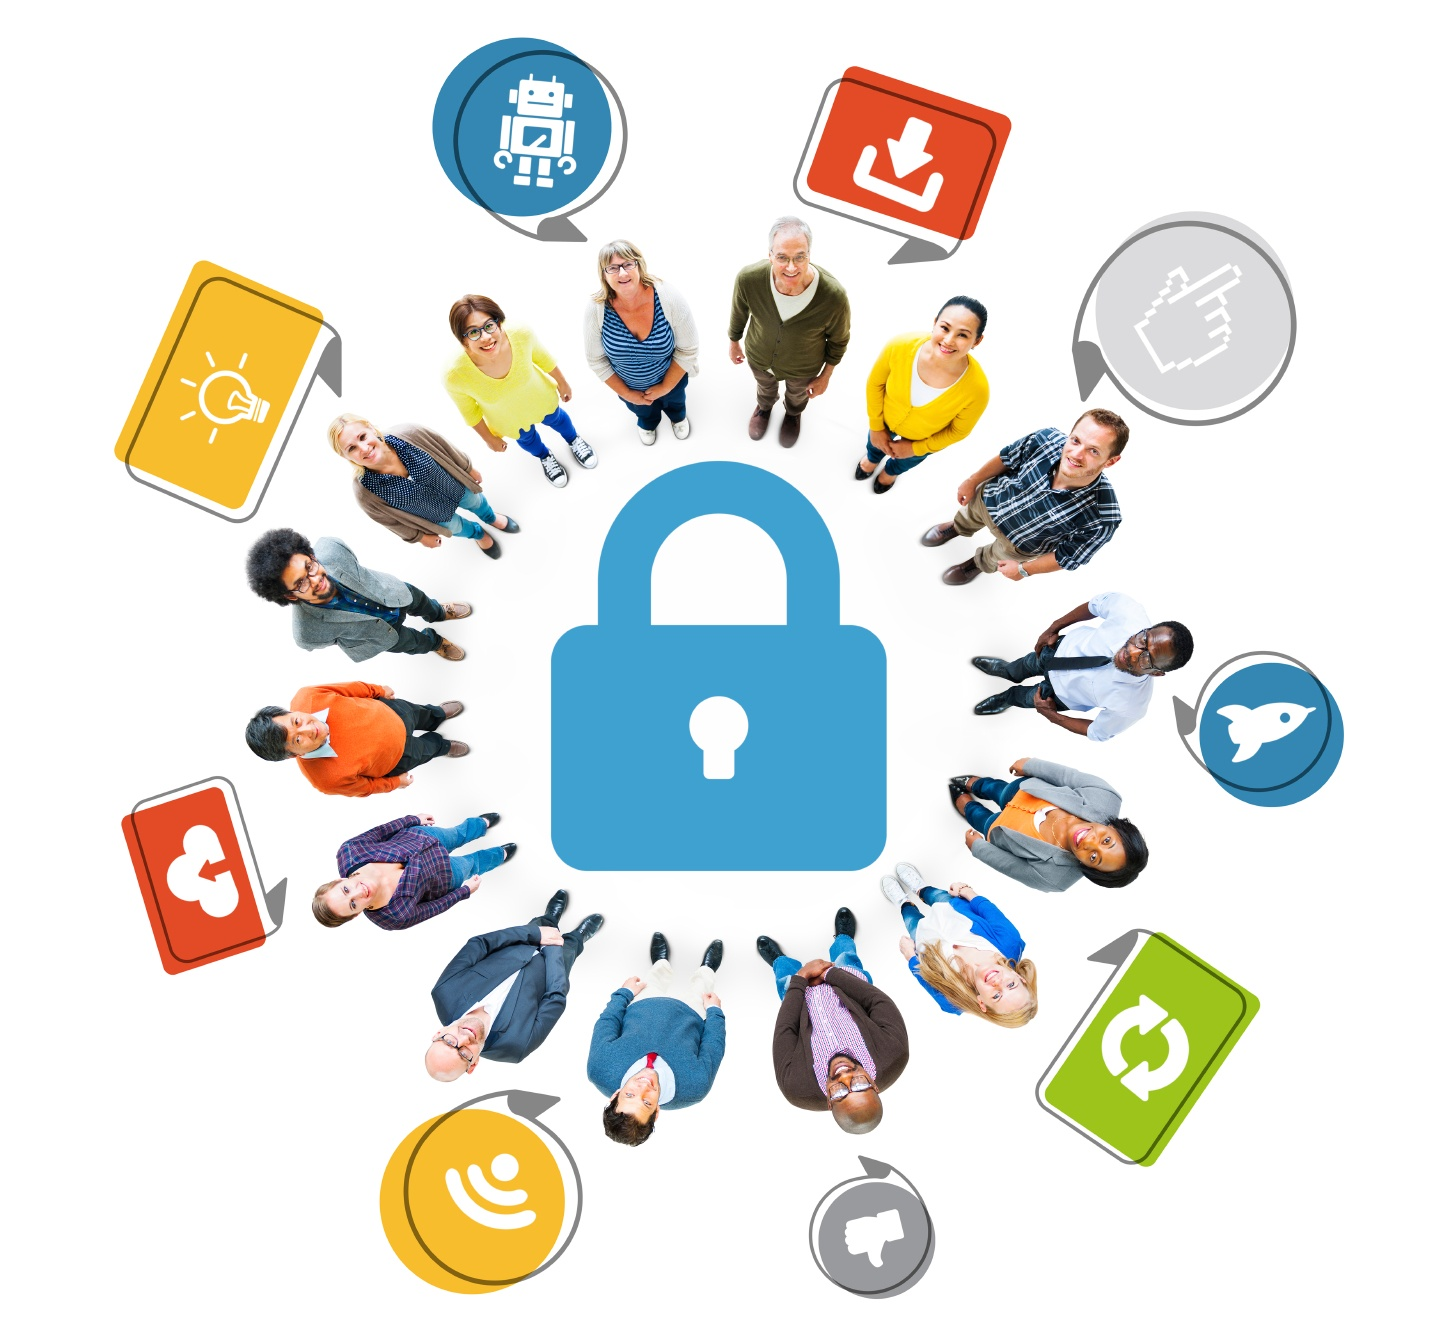 ABT Security Recommendations: Social Networking Safety in the Workplace